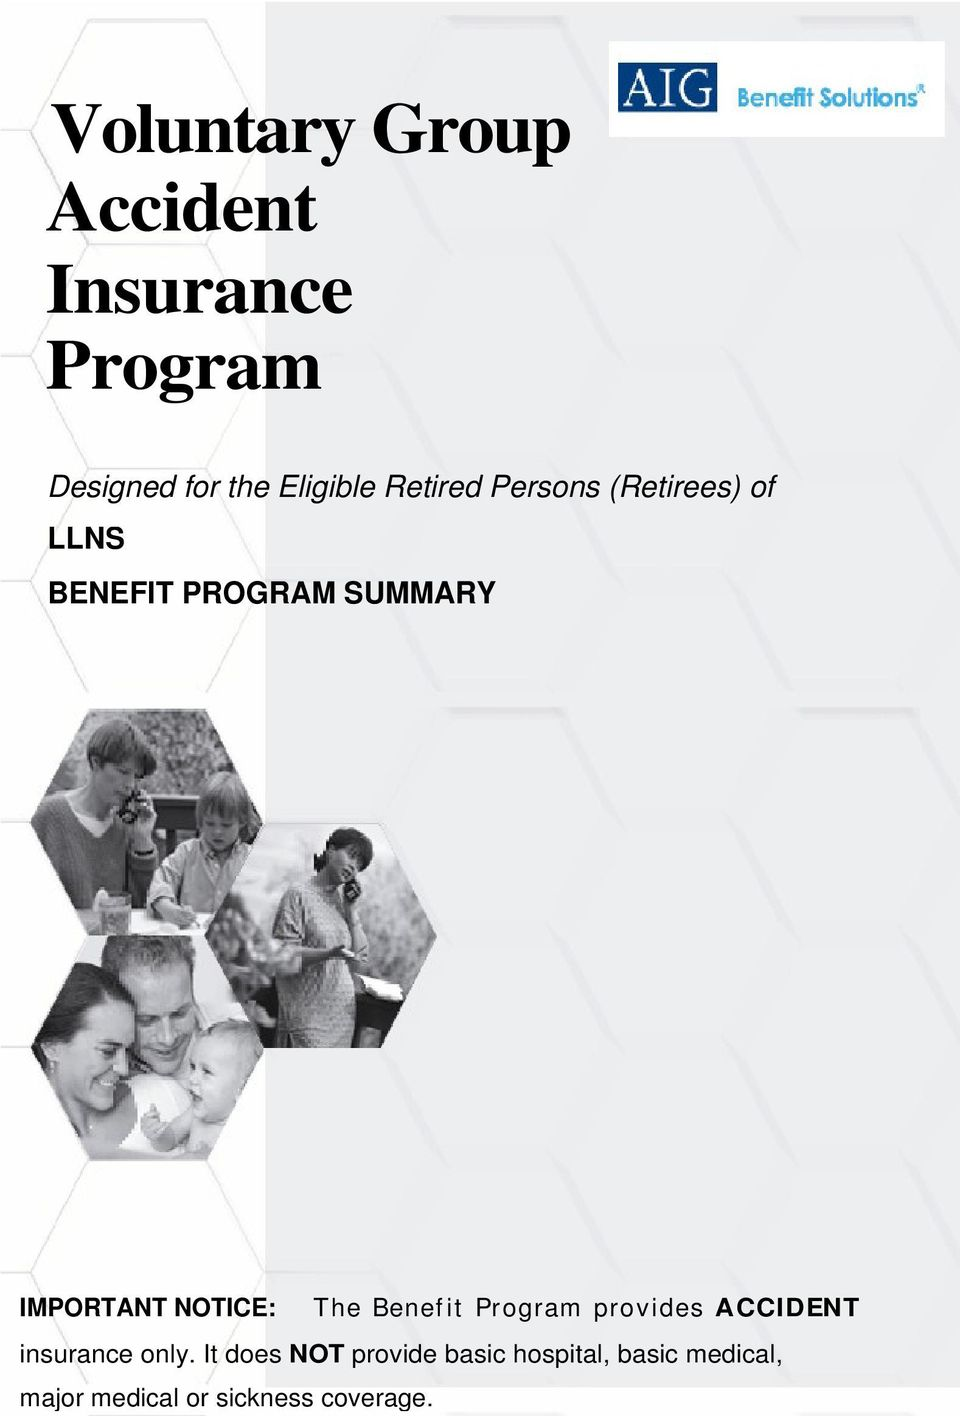 NOTICE: The Benef it Program provides ACCIDENT insurance only.